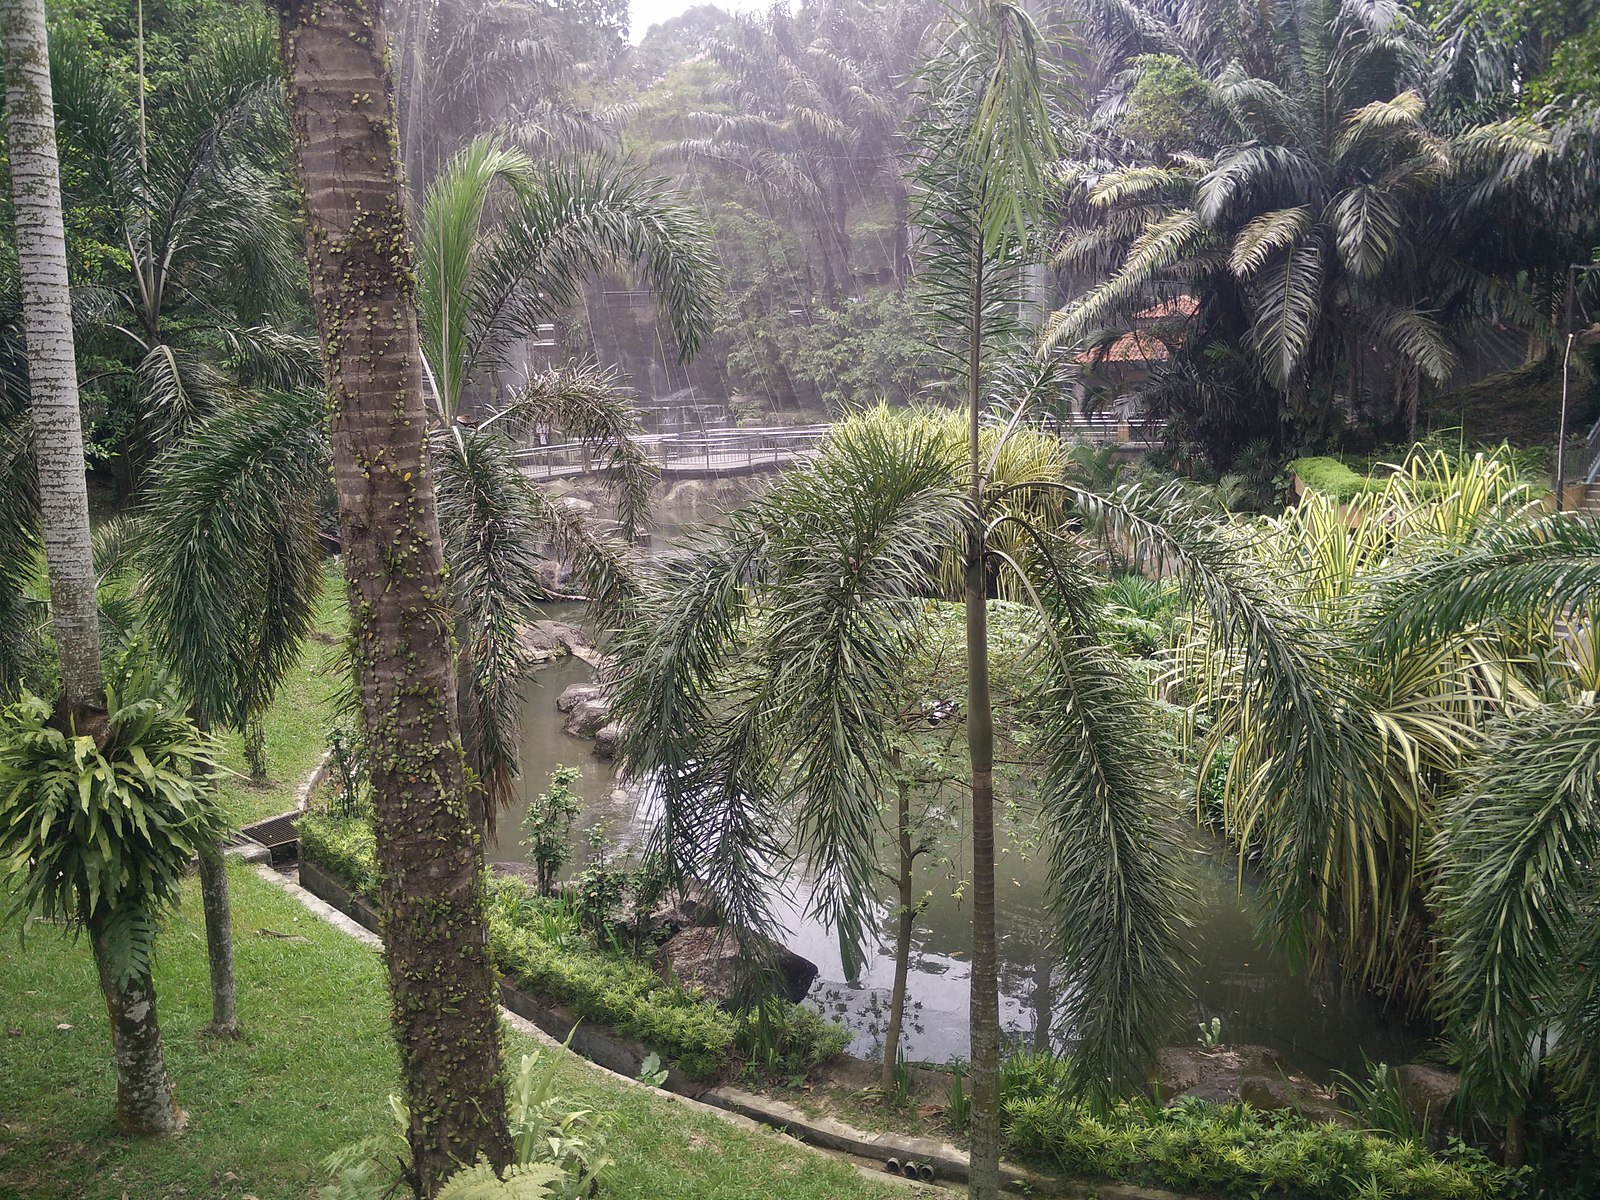 palm trees in park, pond